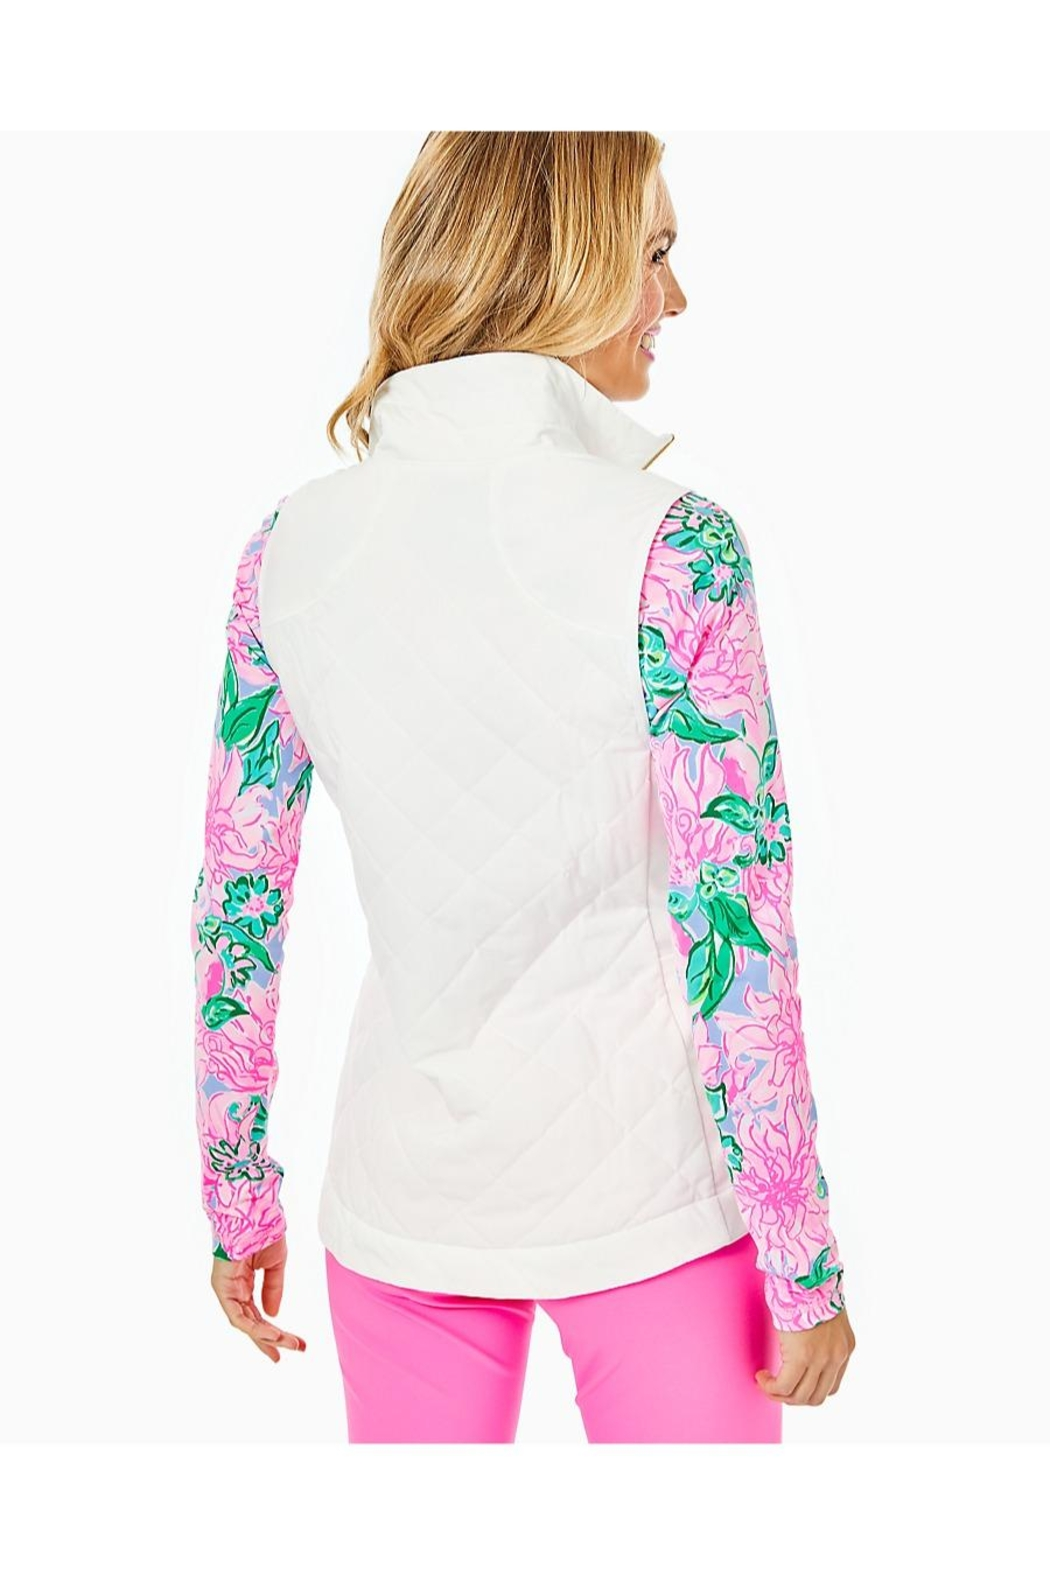 Lilly Pulitzer Luxletic Beverly Vest - Front Full Image